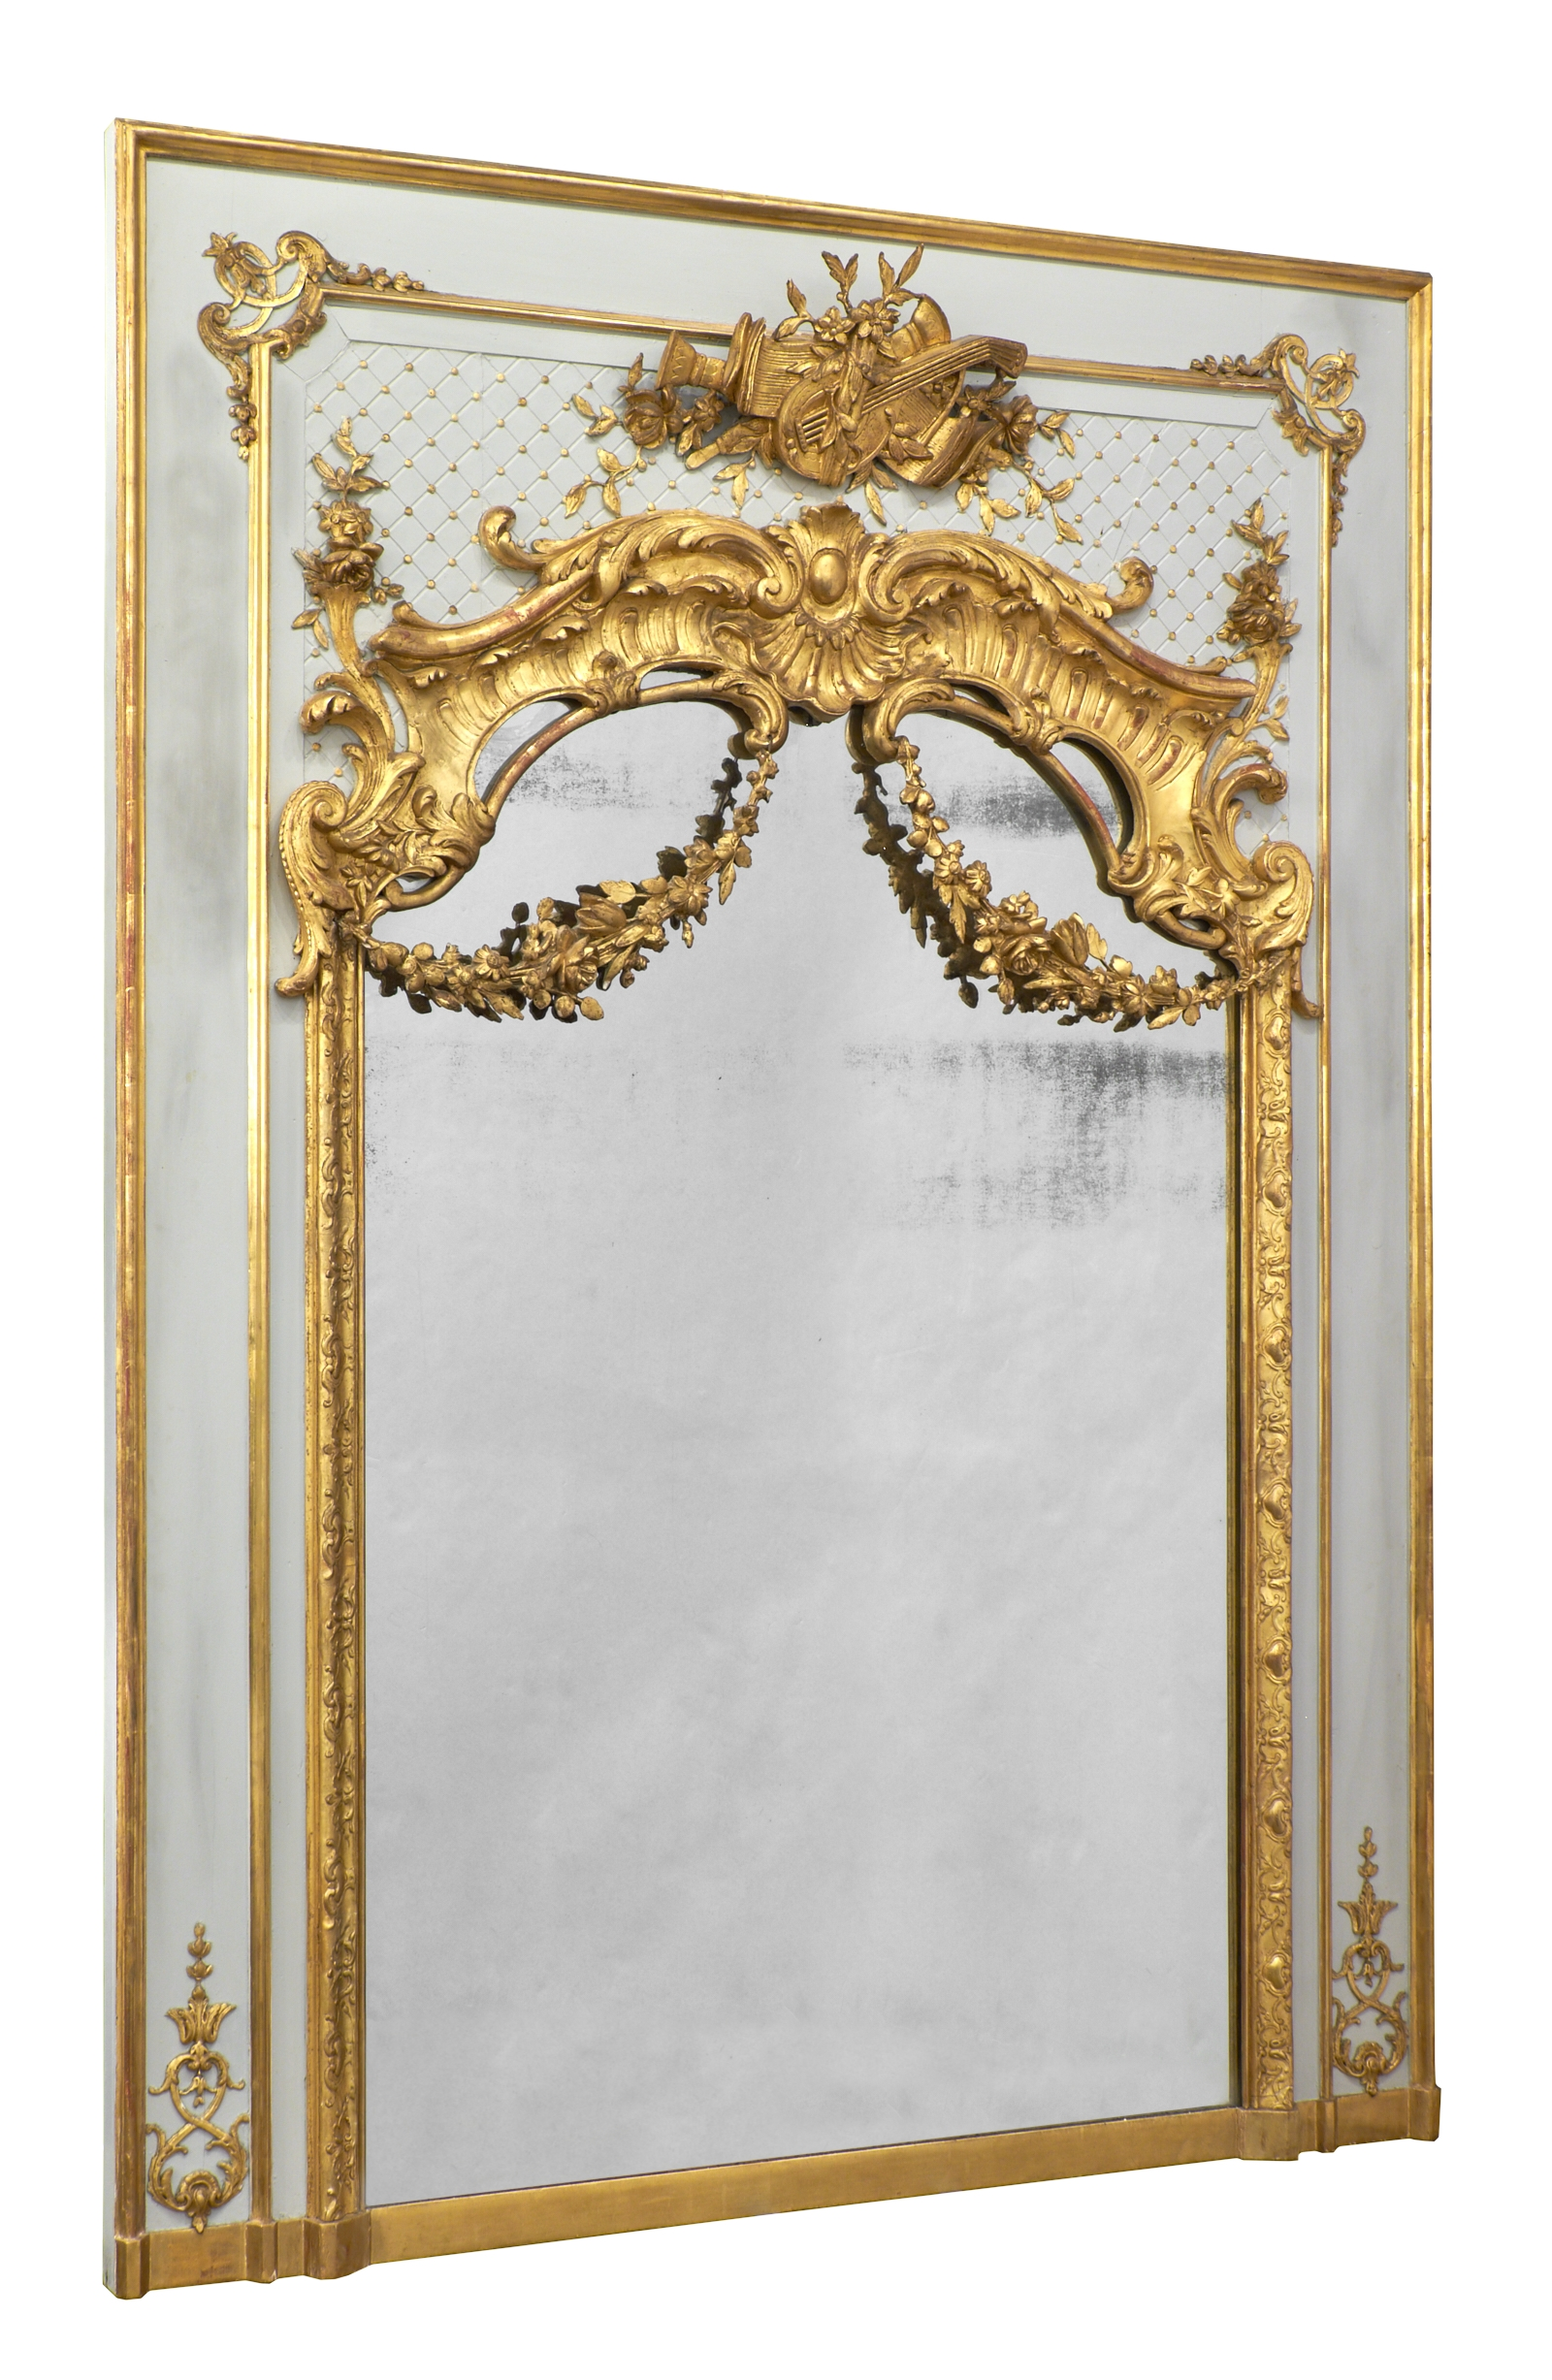 19th Century Louis Xvi Gold Leaf Trumeau Jean Marc Fray Pertaining To Ornate Gold Mirror (View 4 of 15)